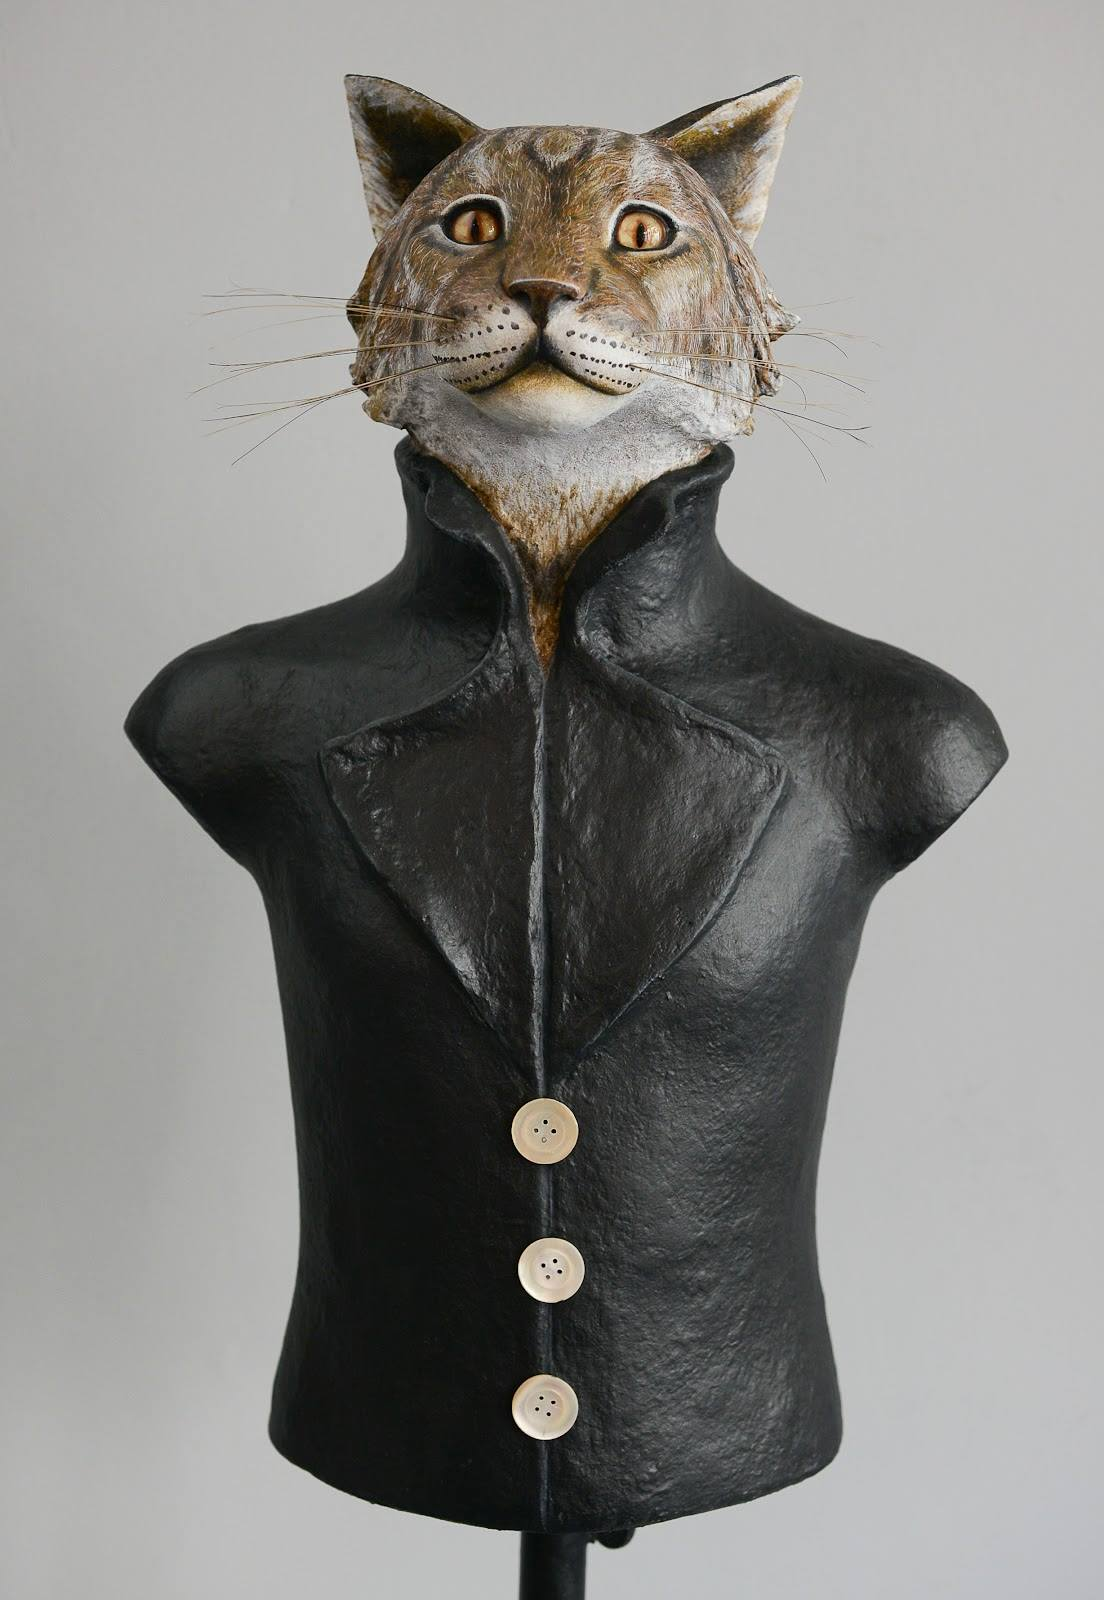 Mélanie Bourlon – Papier maché sculptures chat